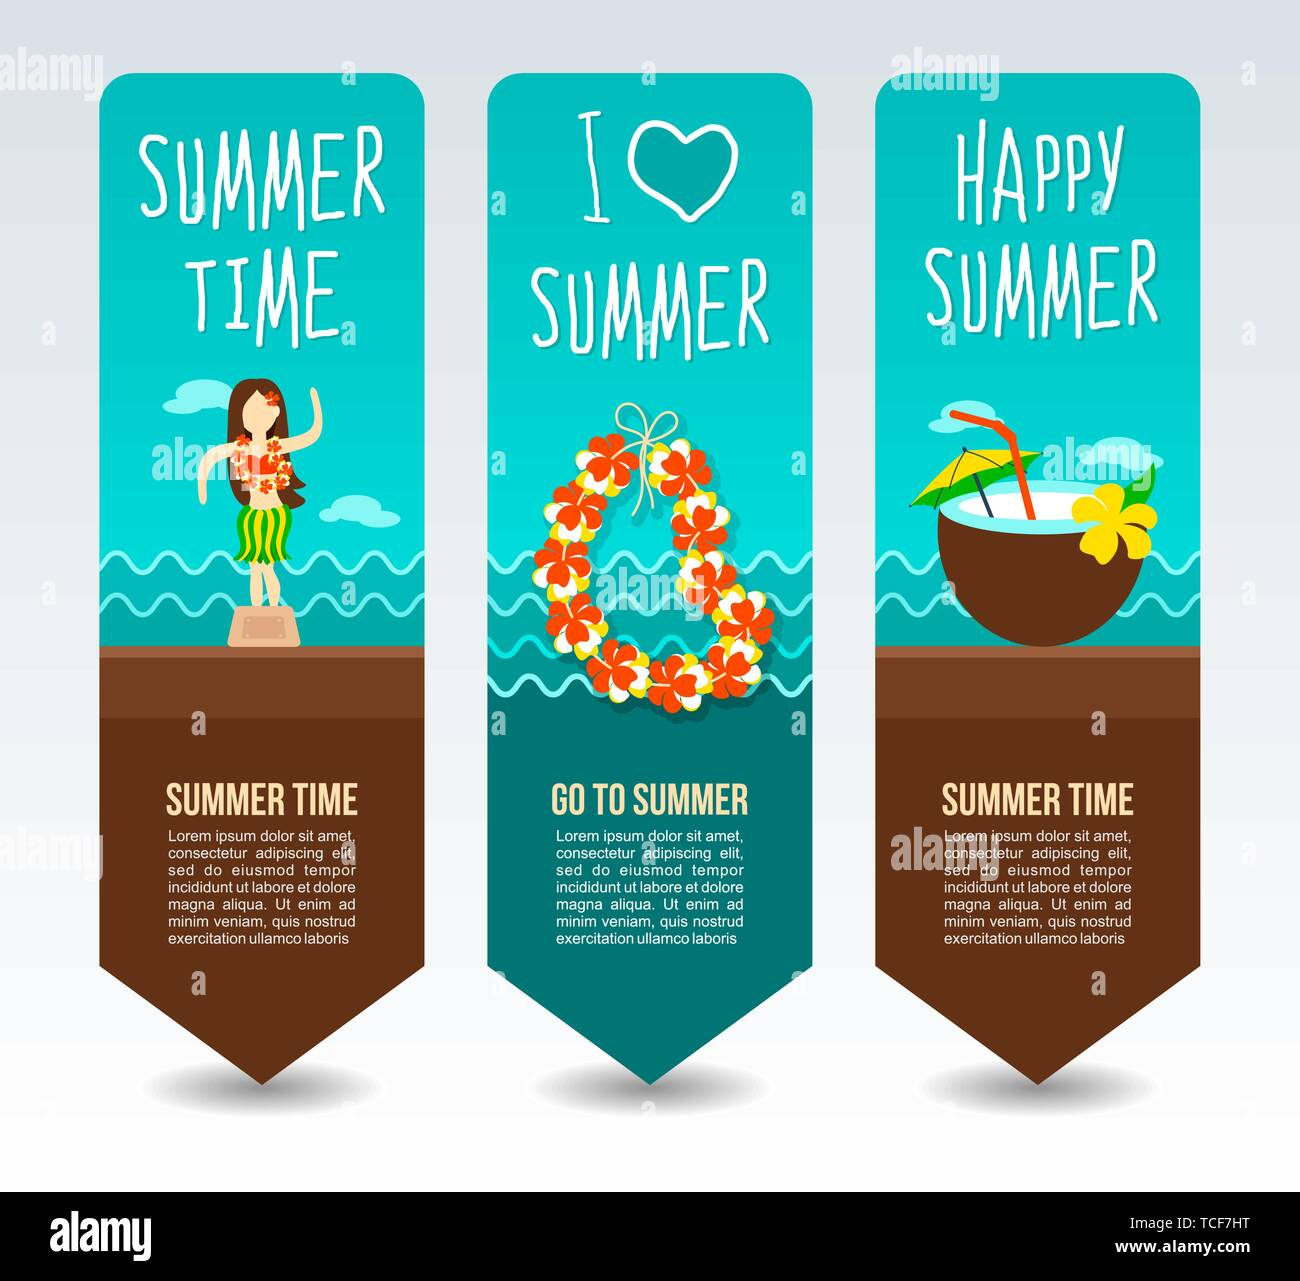 Necklace wreath flower, beach coconut drink cocktail and hula dancer statuette. Summer Travel and vacation vector banners. Summertime. Holiday - Stock Image